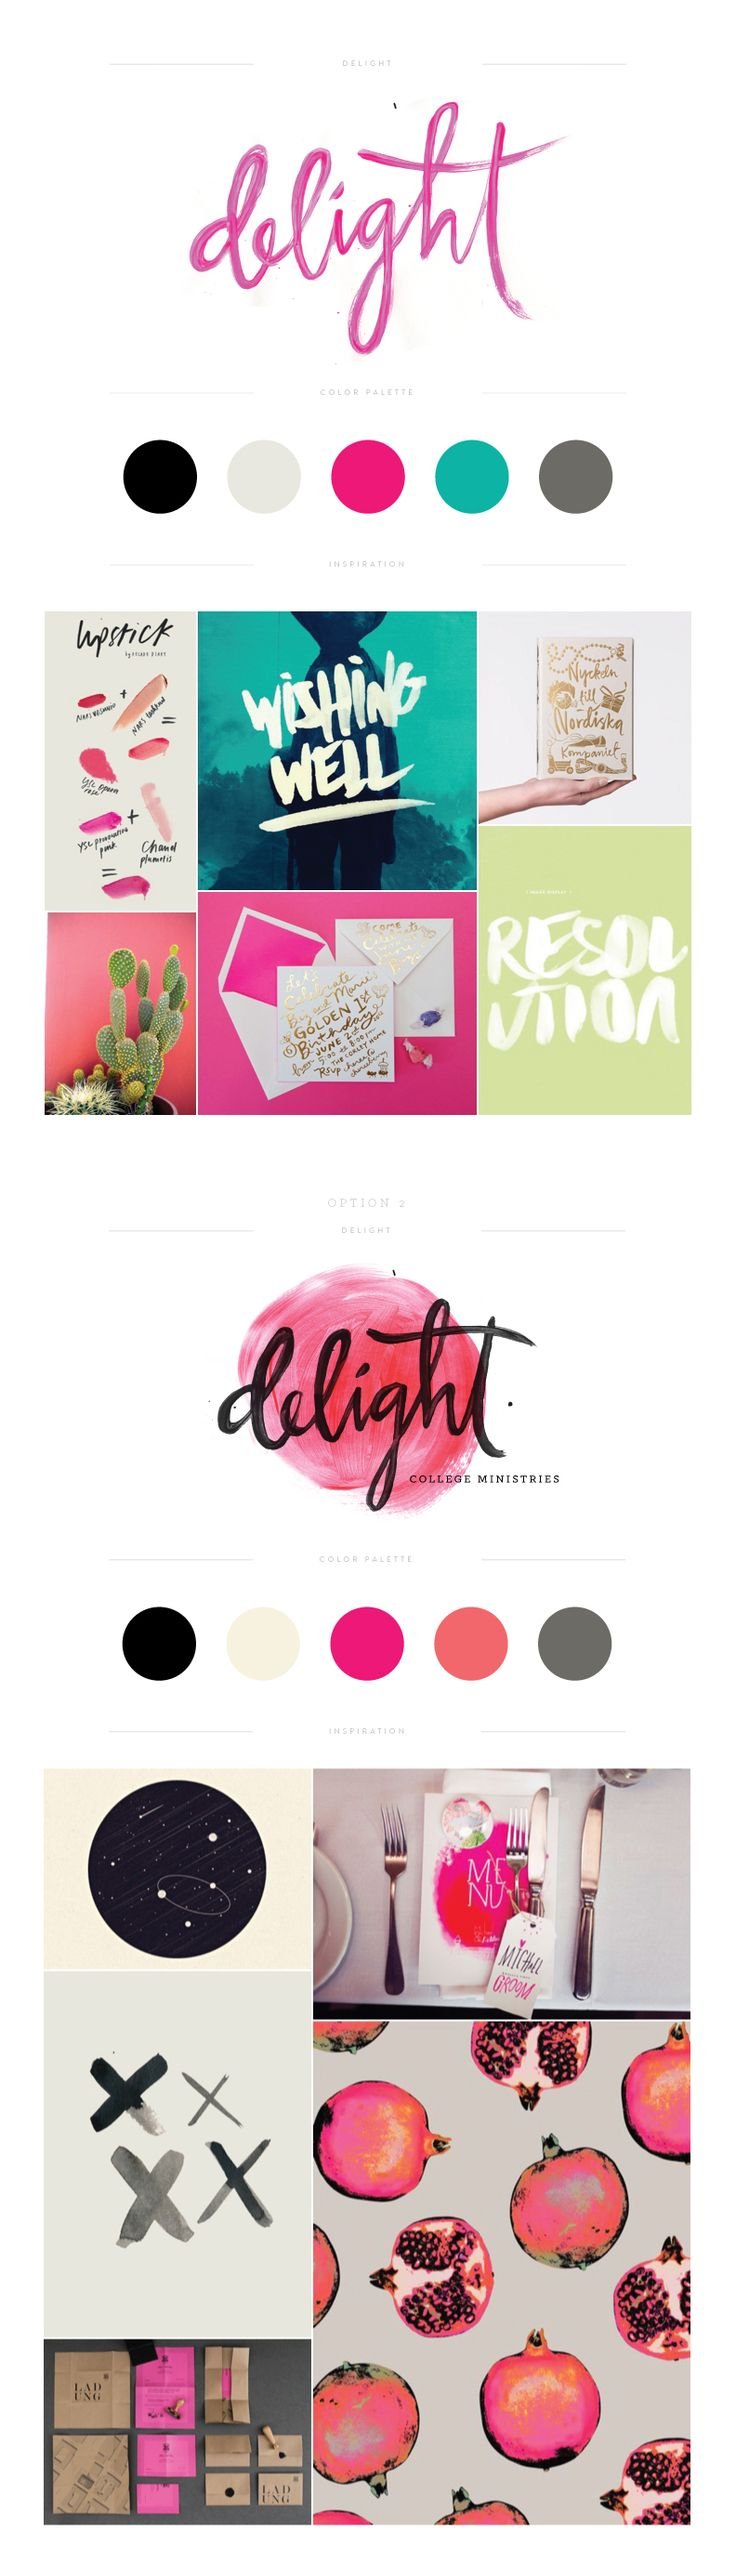 Delight Branding by Lauren Ledbetter Design & Styling  #stationary #corporate #design #corporatedesign #identity #branding #identity #branding #marketing / #logo #design #graphic #branding #identity #brand #logotype #typography #creative